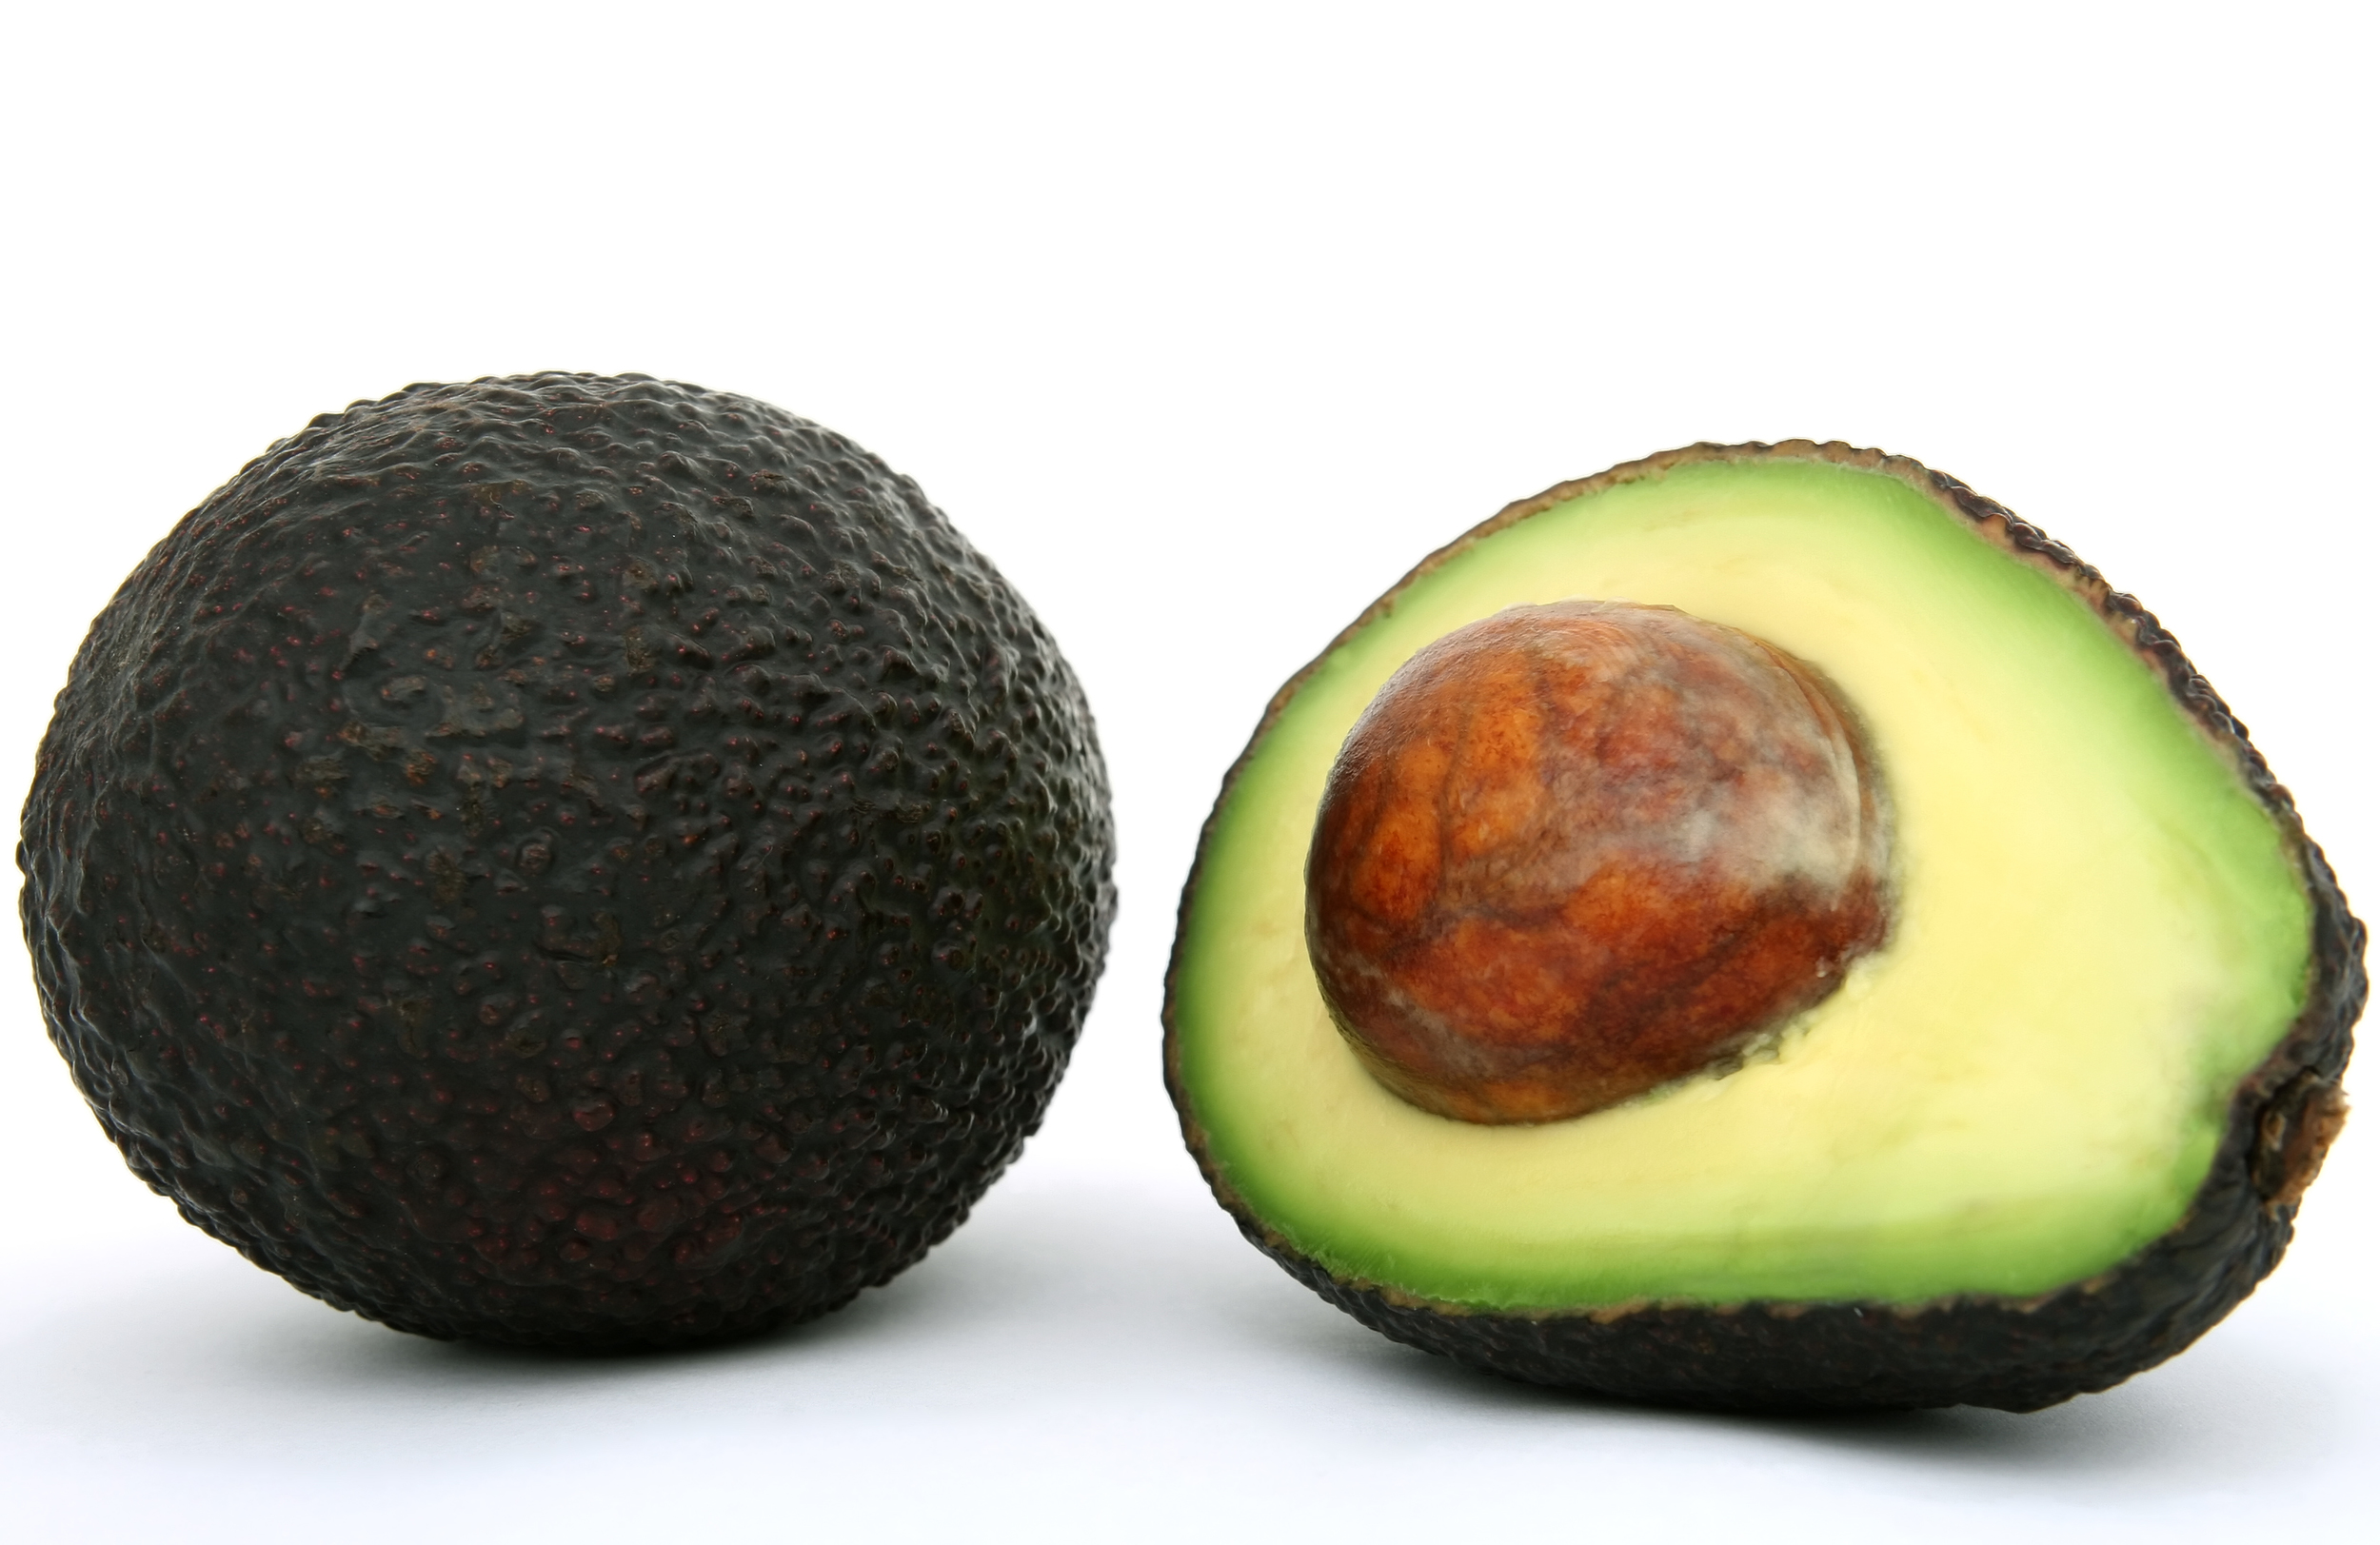 Who doesn't love avocadoes?